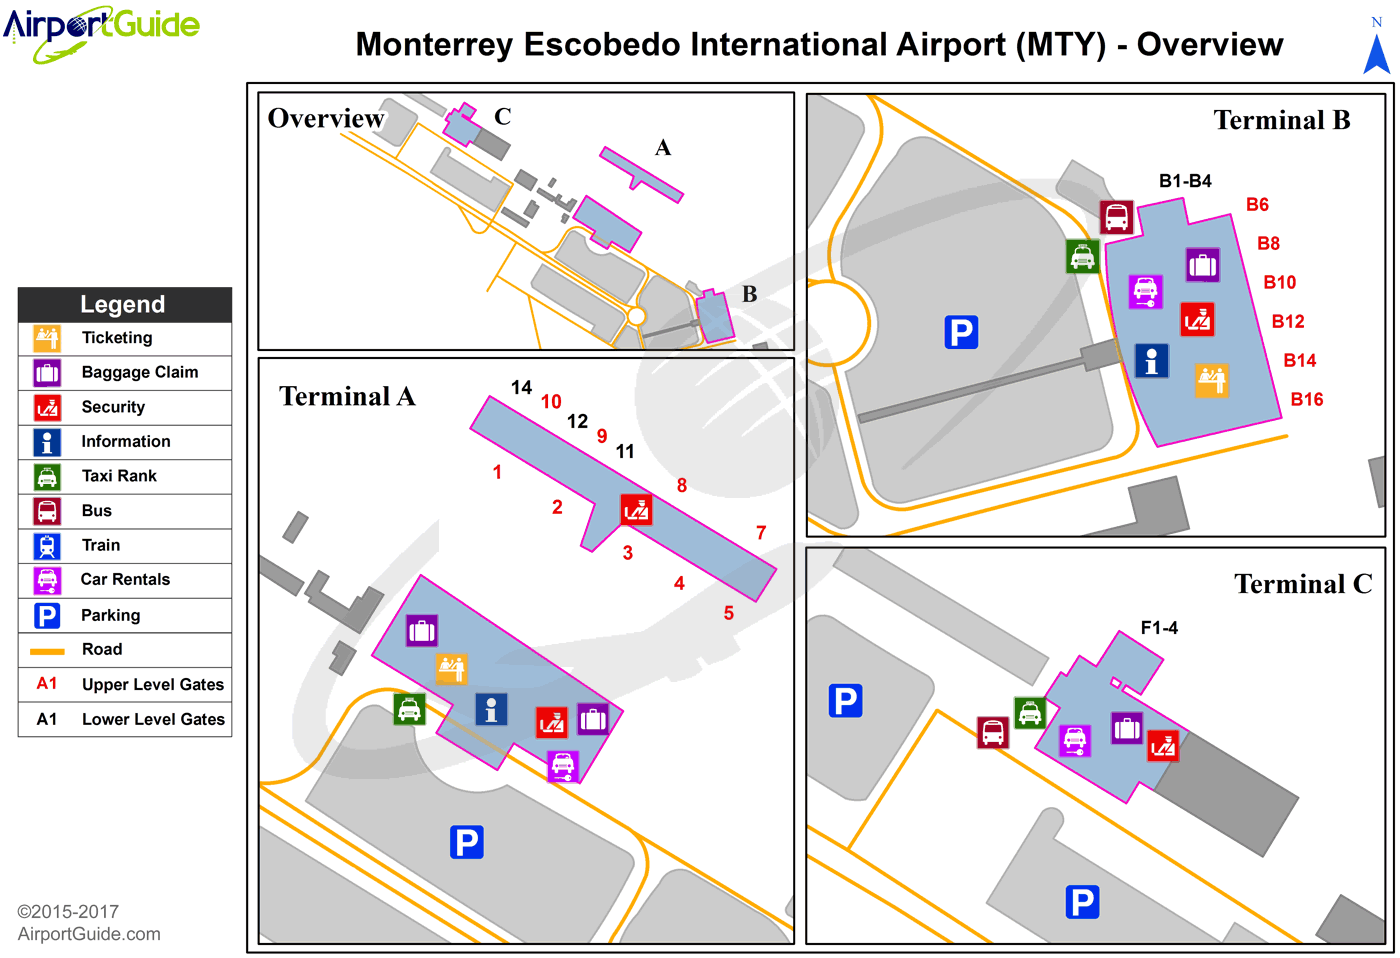 Monterrey - General Mariano Escobedo International (MTY) Airport Terminal Map - Overview